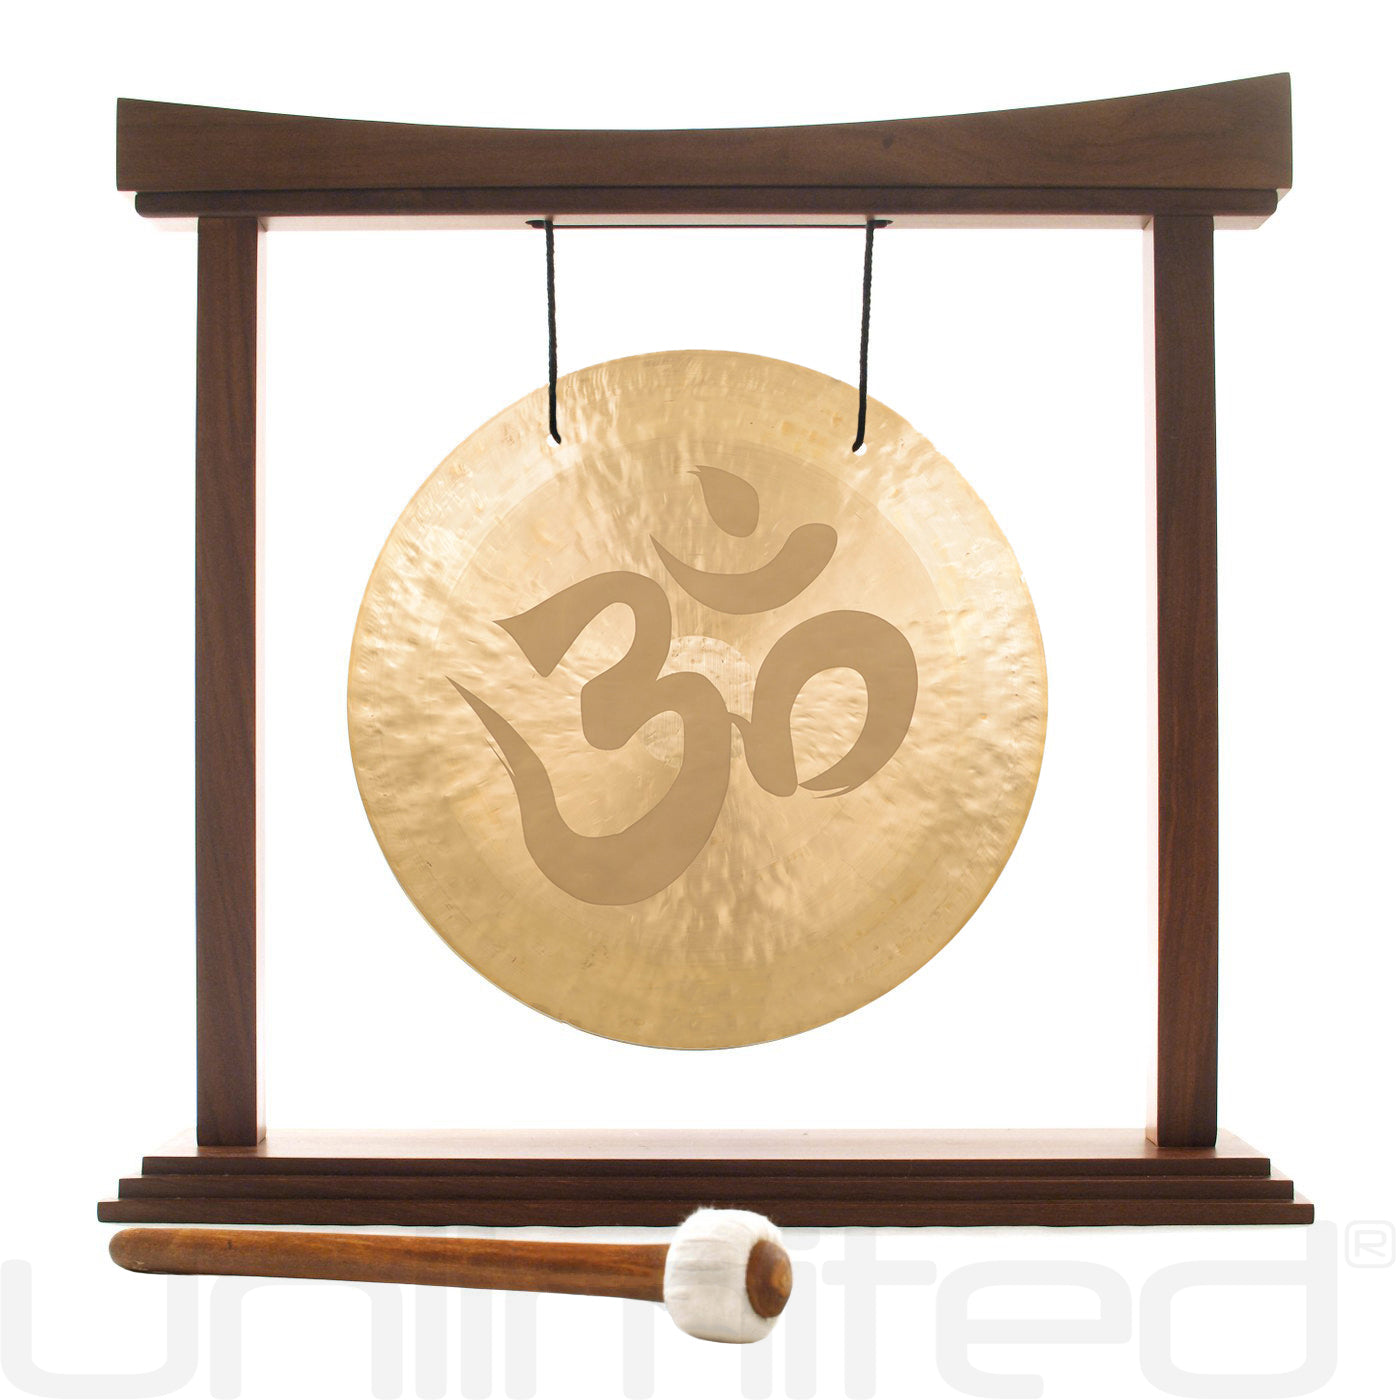 Gongs with Spiritual Symbols - Gongs Unlimited